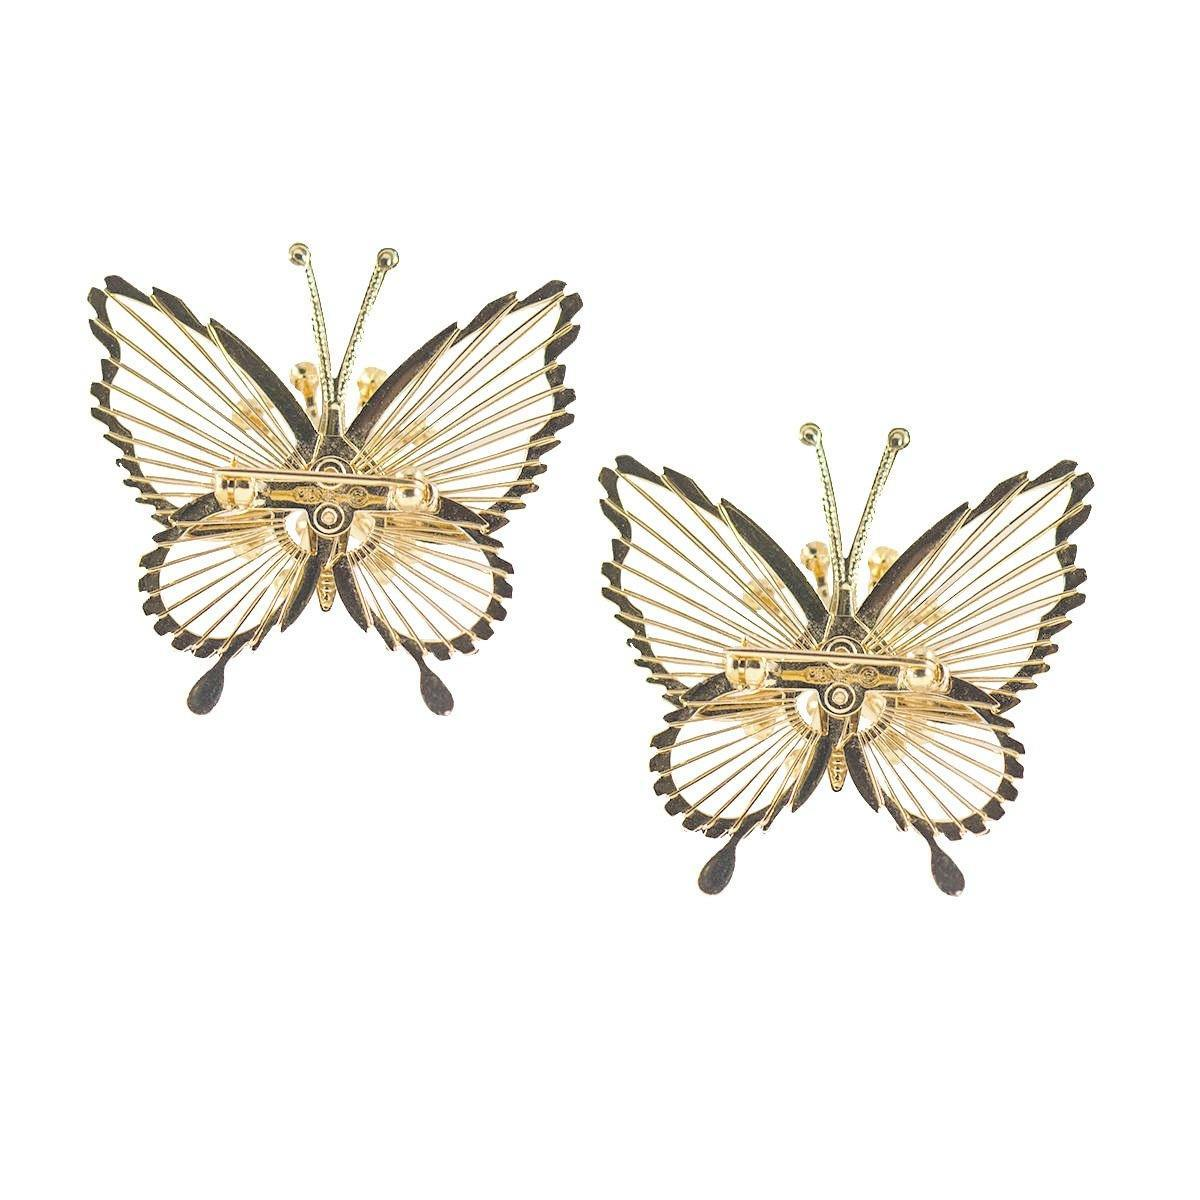 Vintage 50s Monet Butterfly Pins, Spinnerette Series – Set of Two